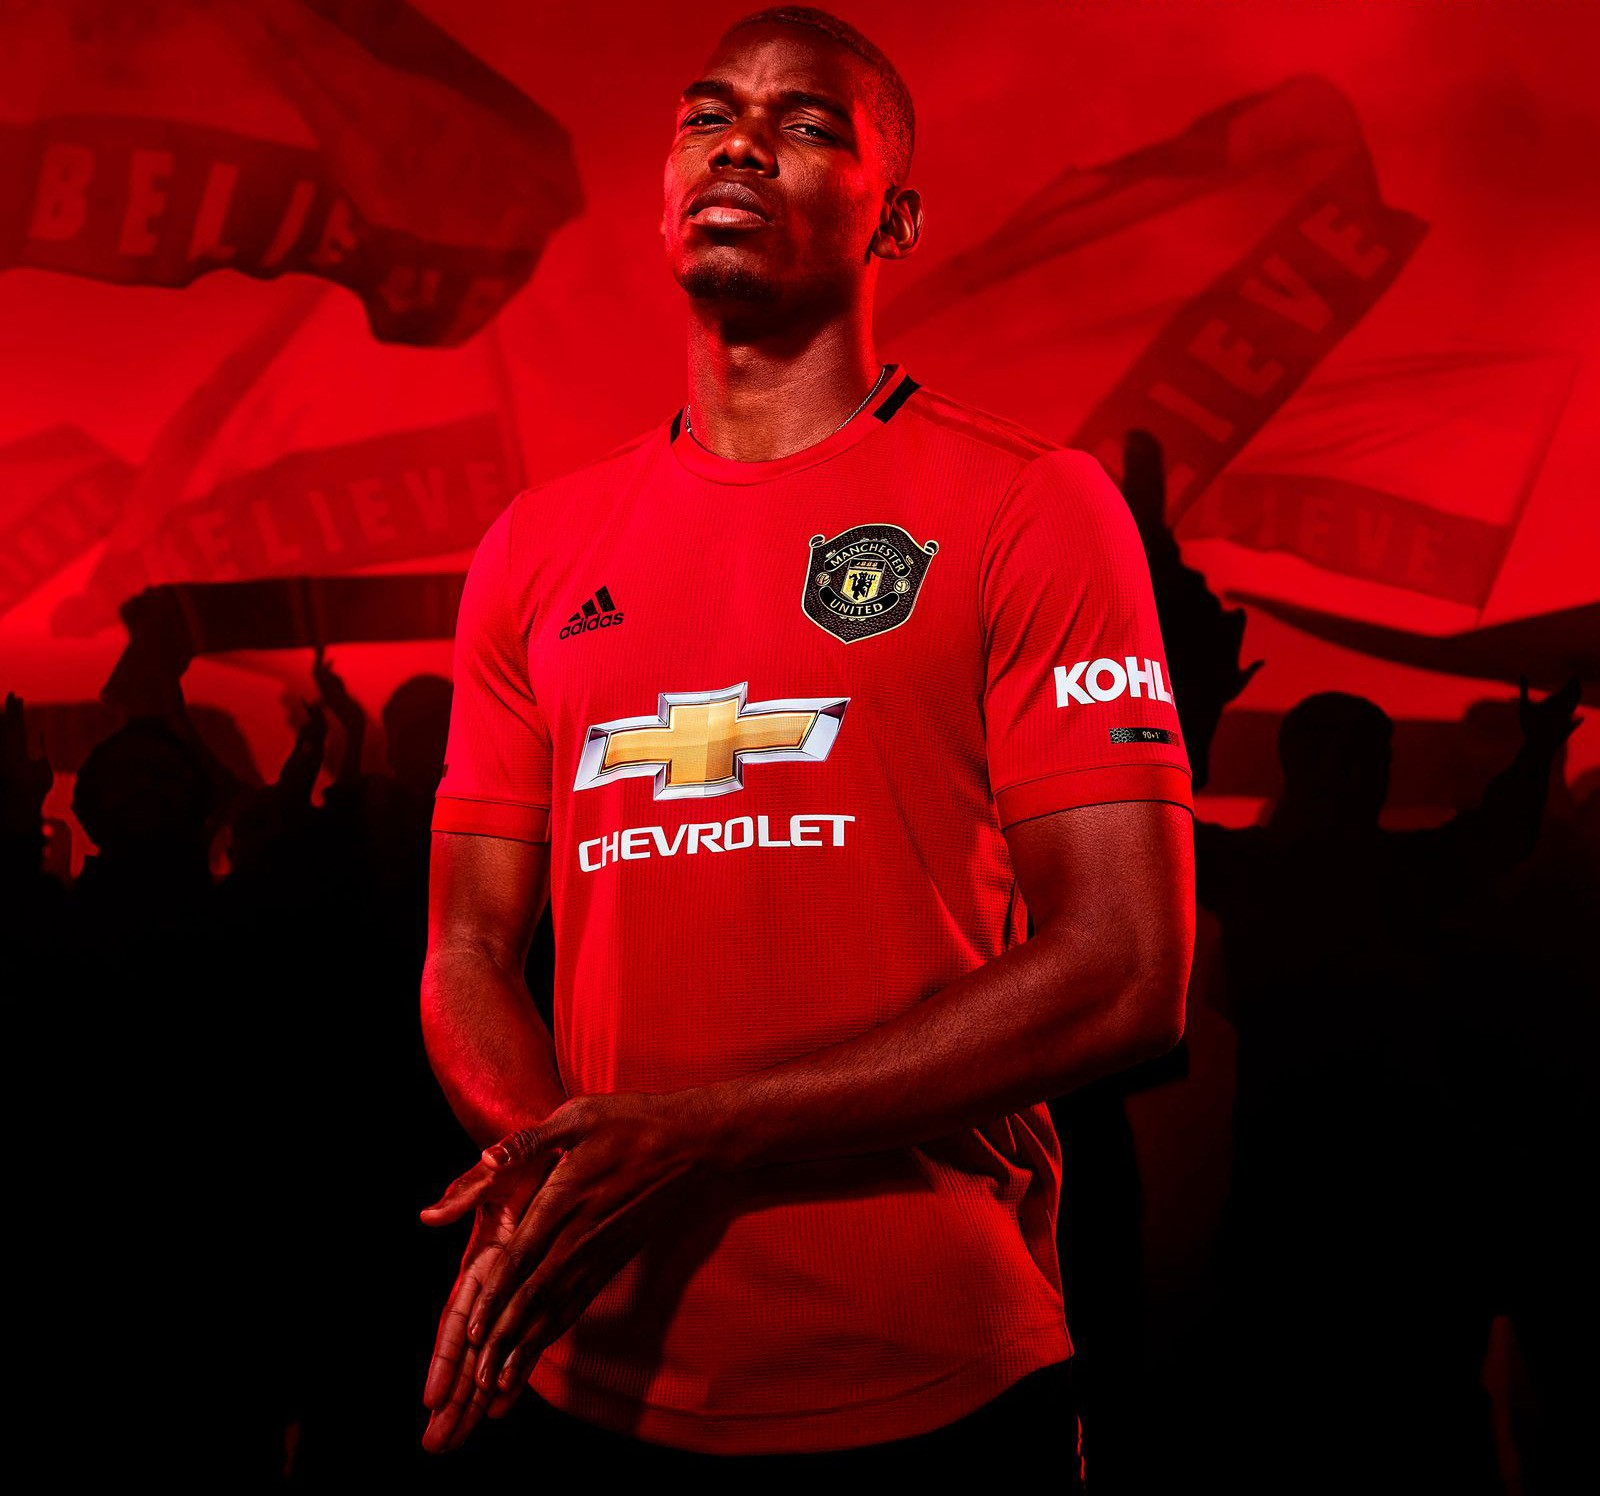 wholesale dealer 780be 4d92f Man Utd kit 2019/20: Home and away shirts unveiled - Radio Times